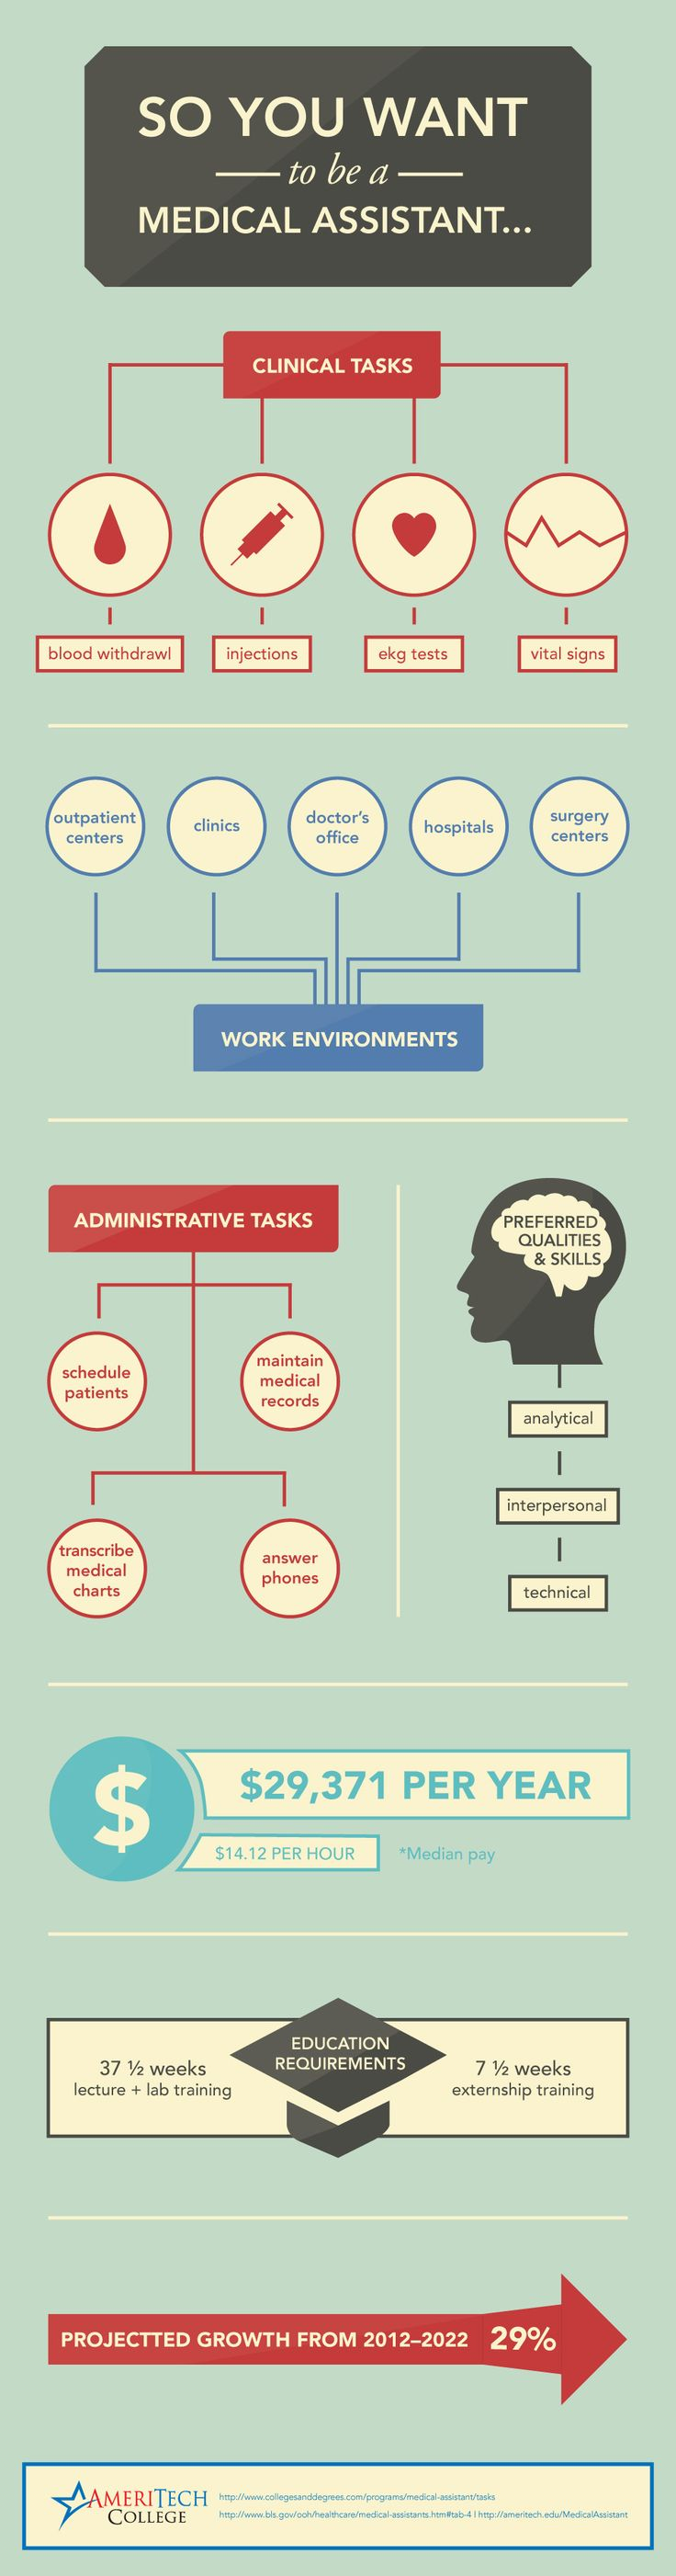 So You Want To Be a Medical Assistant #Infographics #Career #Image — Lightscap3s.com